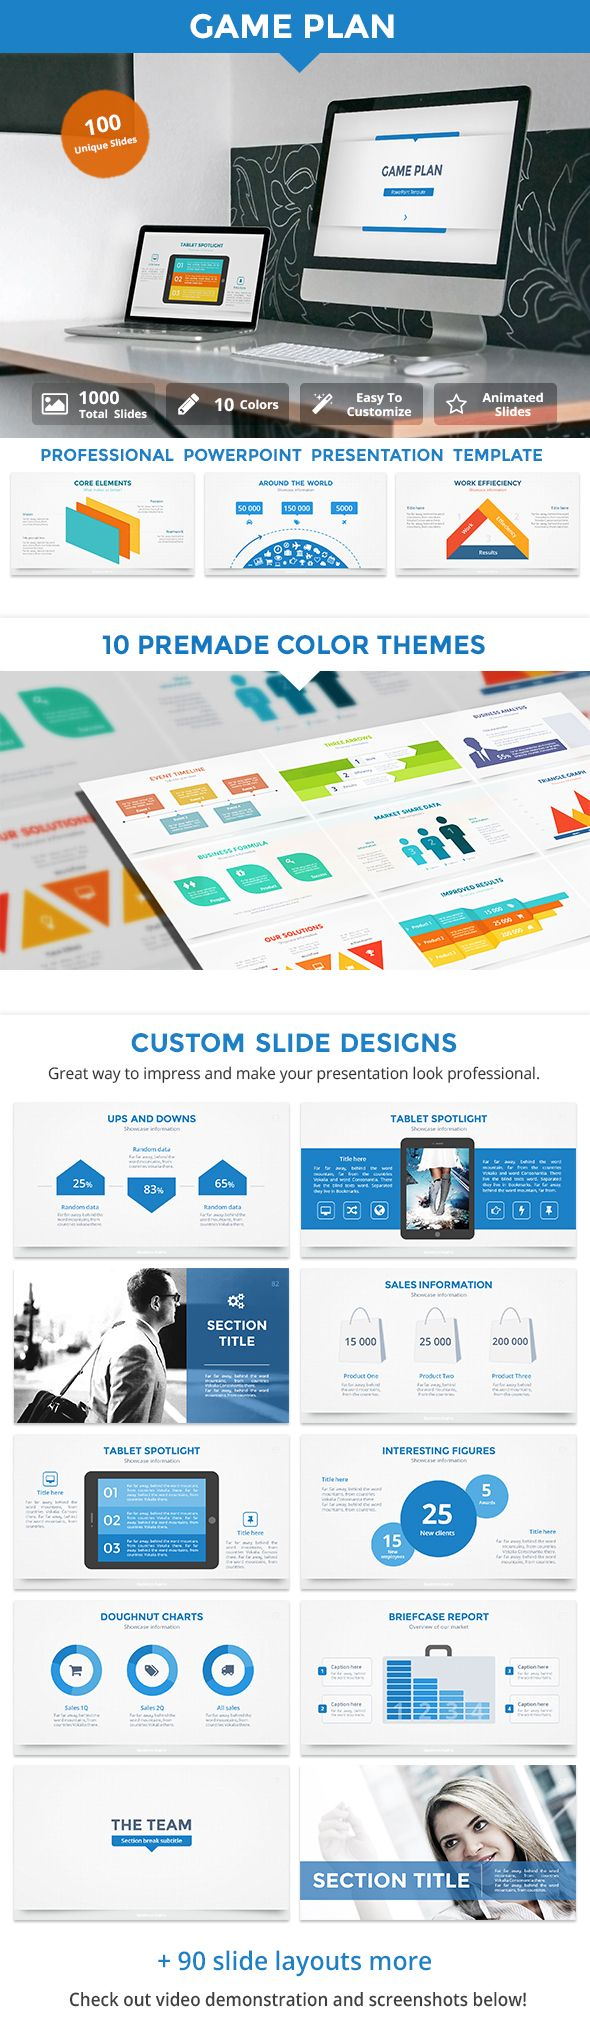 13 best powerpoint templates images on pinterest presentation game plan v2 powerpoint template toneelgroepblik Image collections